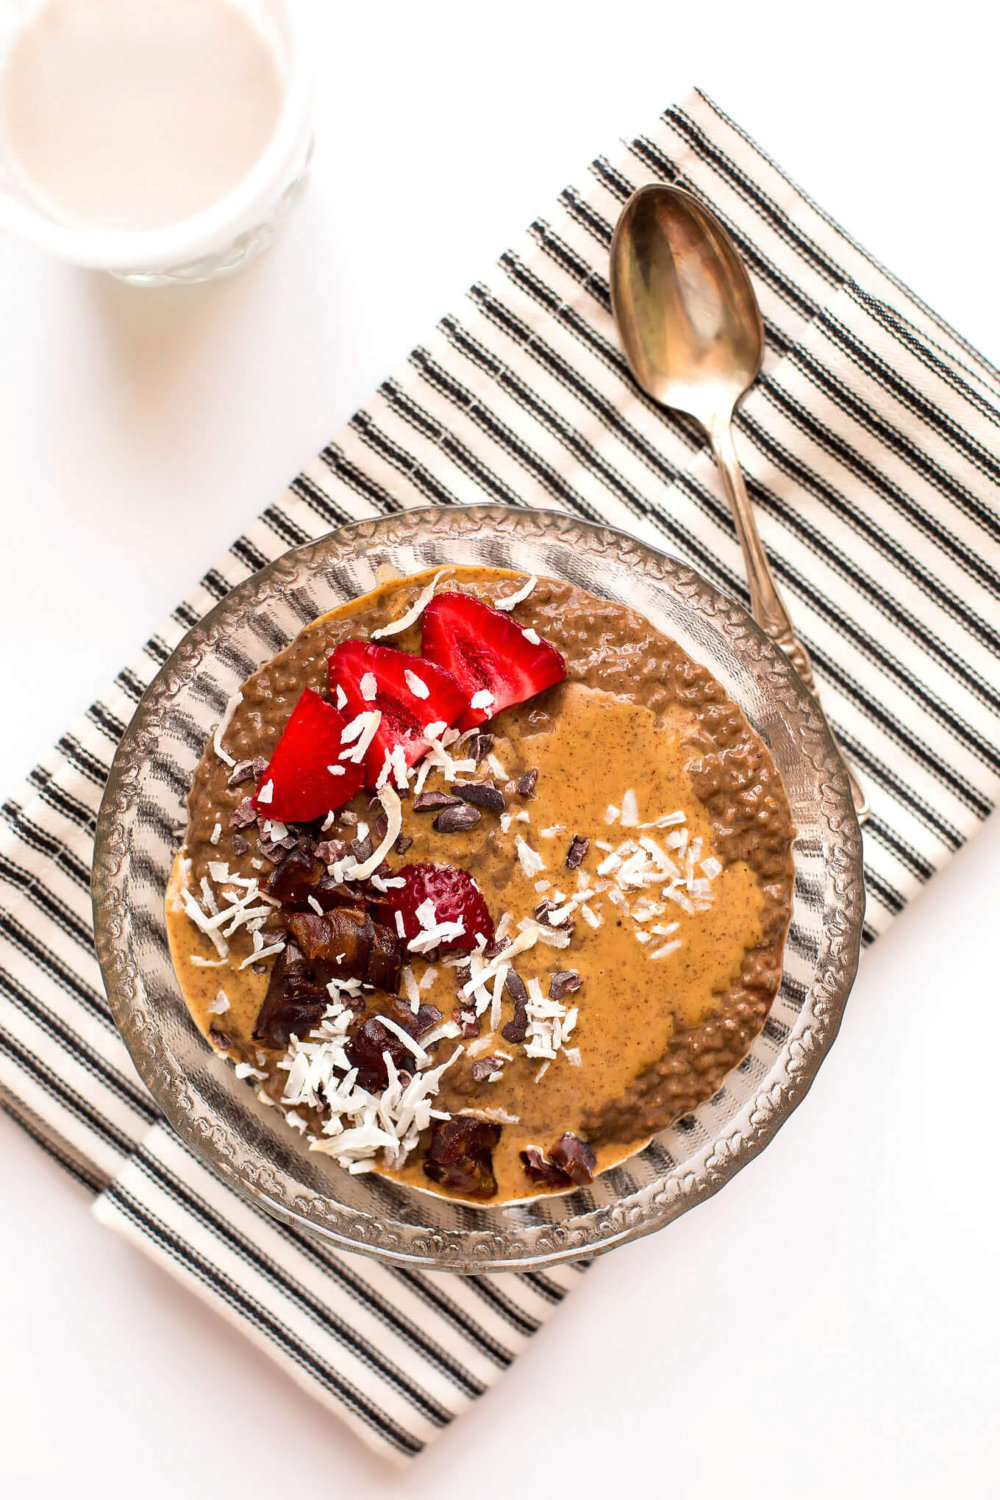 Secretly Green Almond Butter Chocolate Chia Pudding